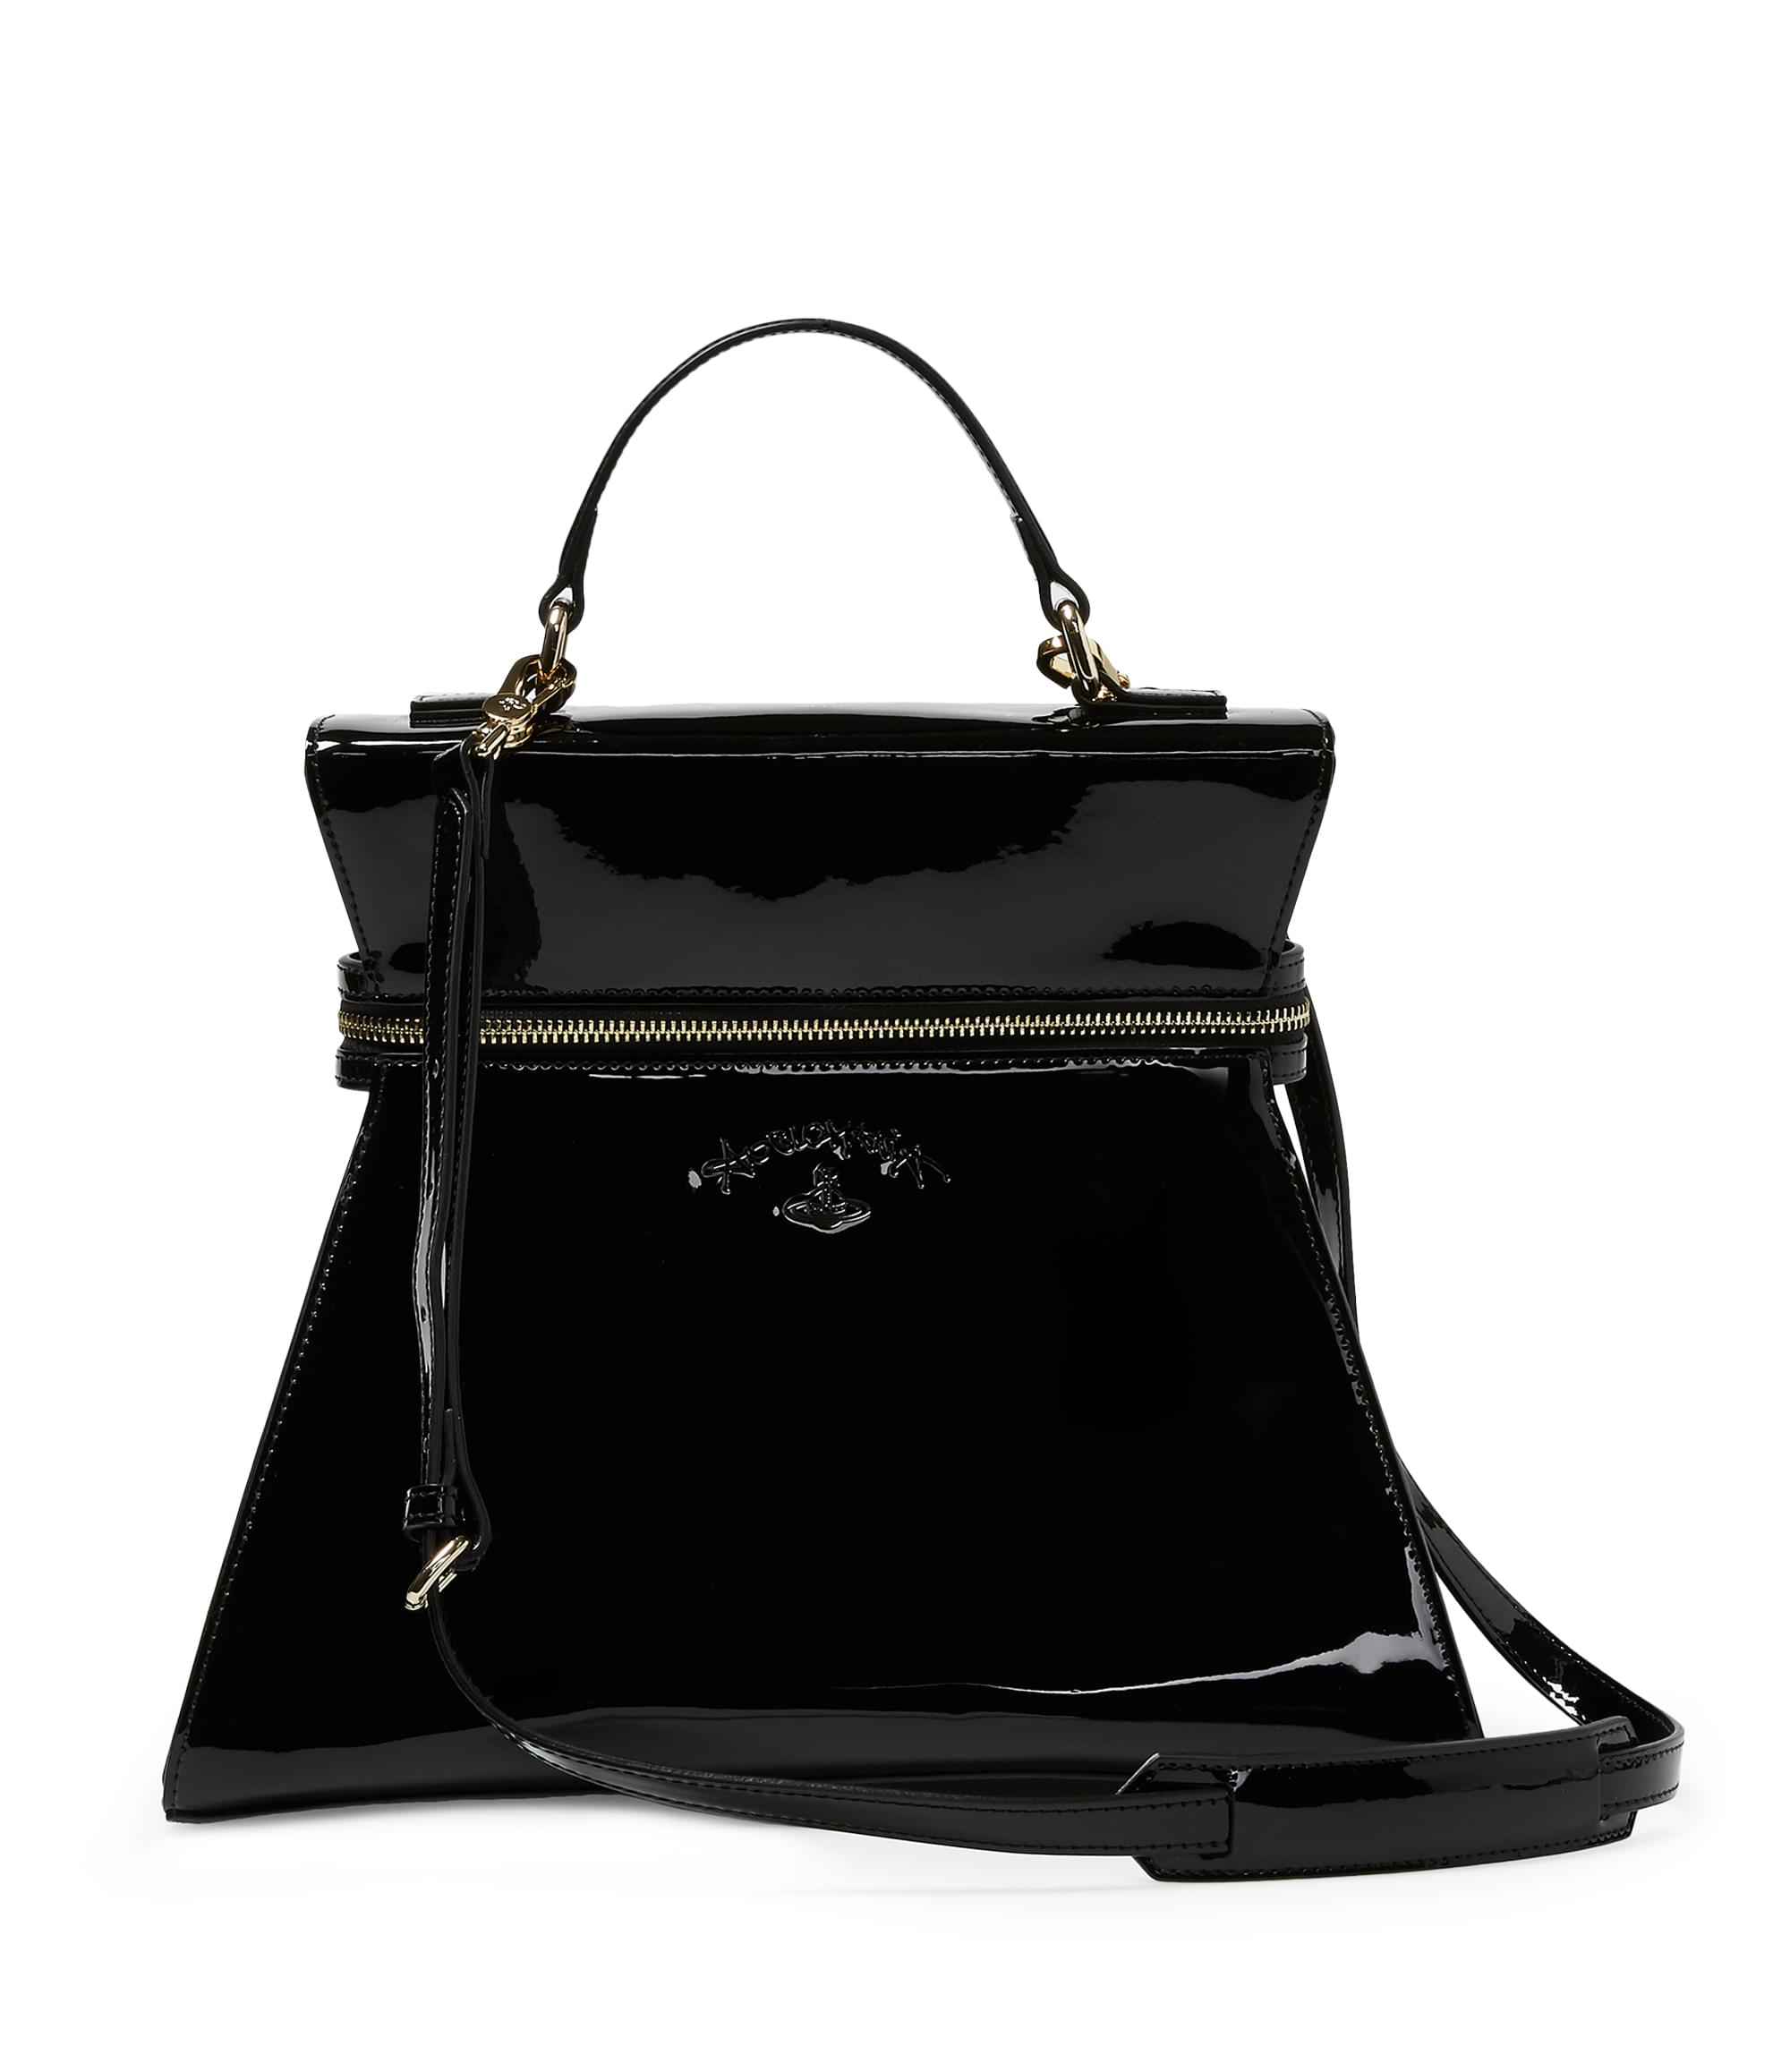 Vivienne Westwood Large Kelly Handbag 190043 Black